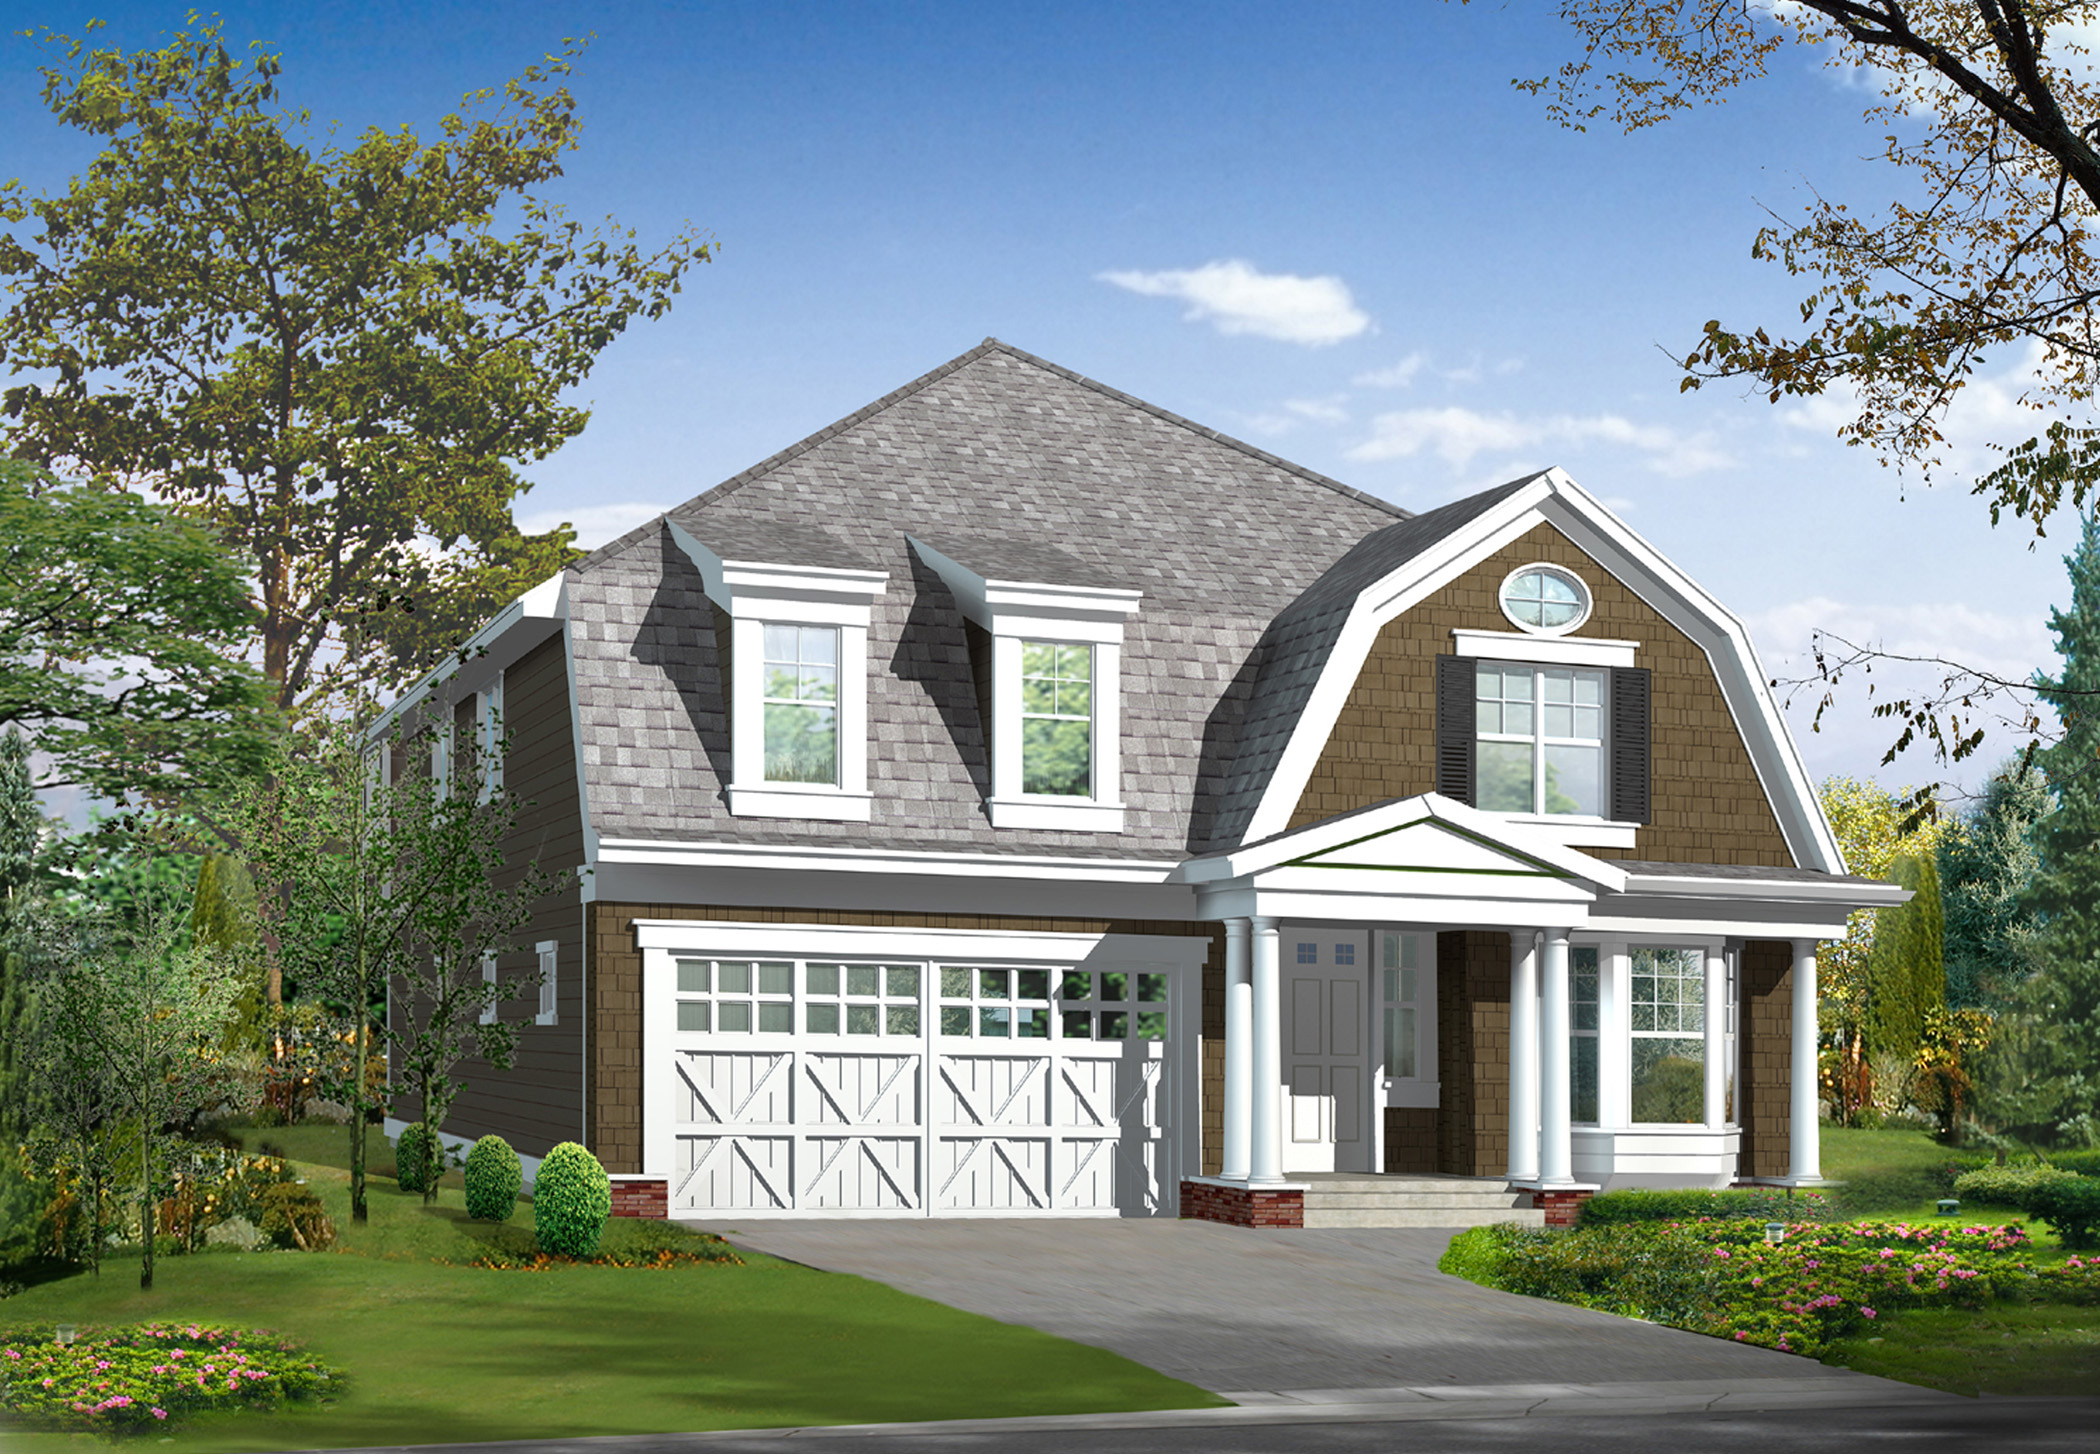 Dormers add unique features to floor plans 23124jd architectural designs house plans - House plans dormers ...